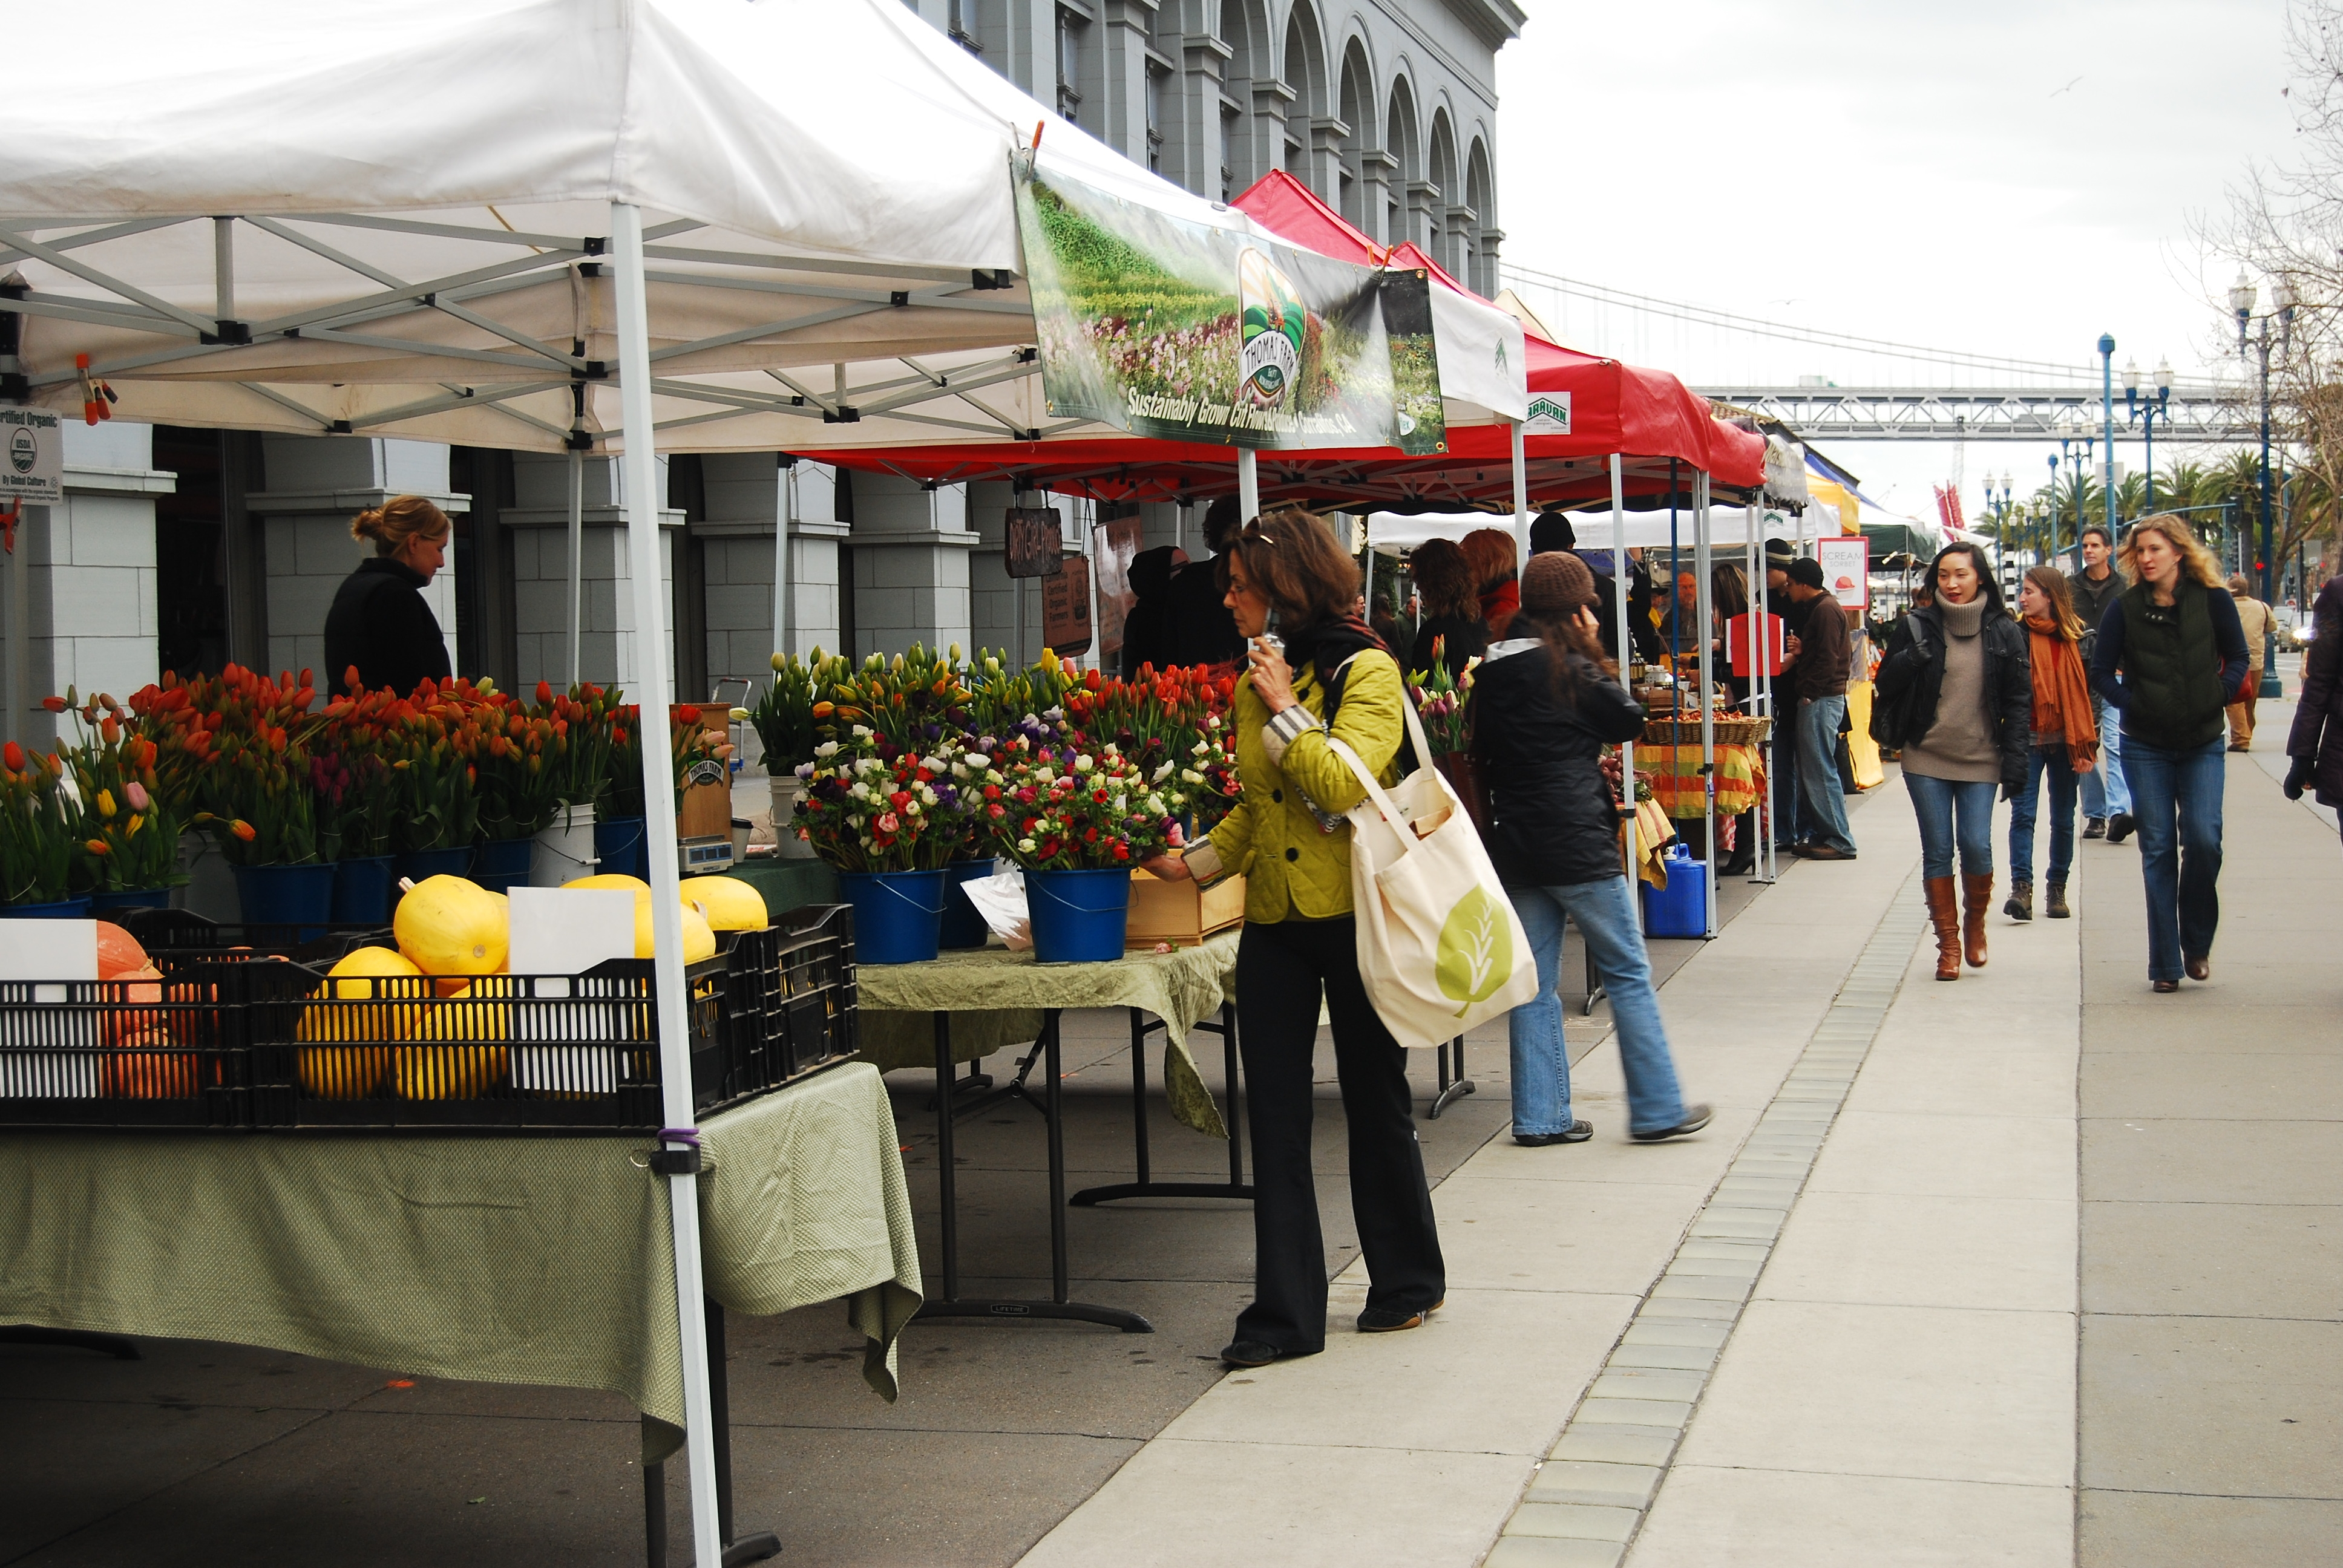 A San Francisco farmer's market in front of the historic Ferry Building